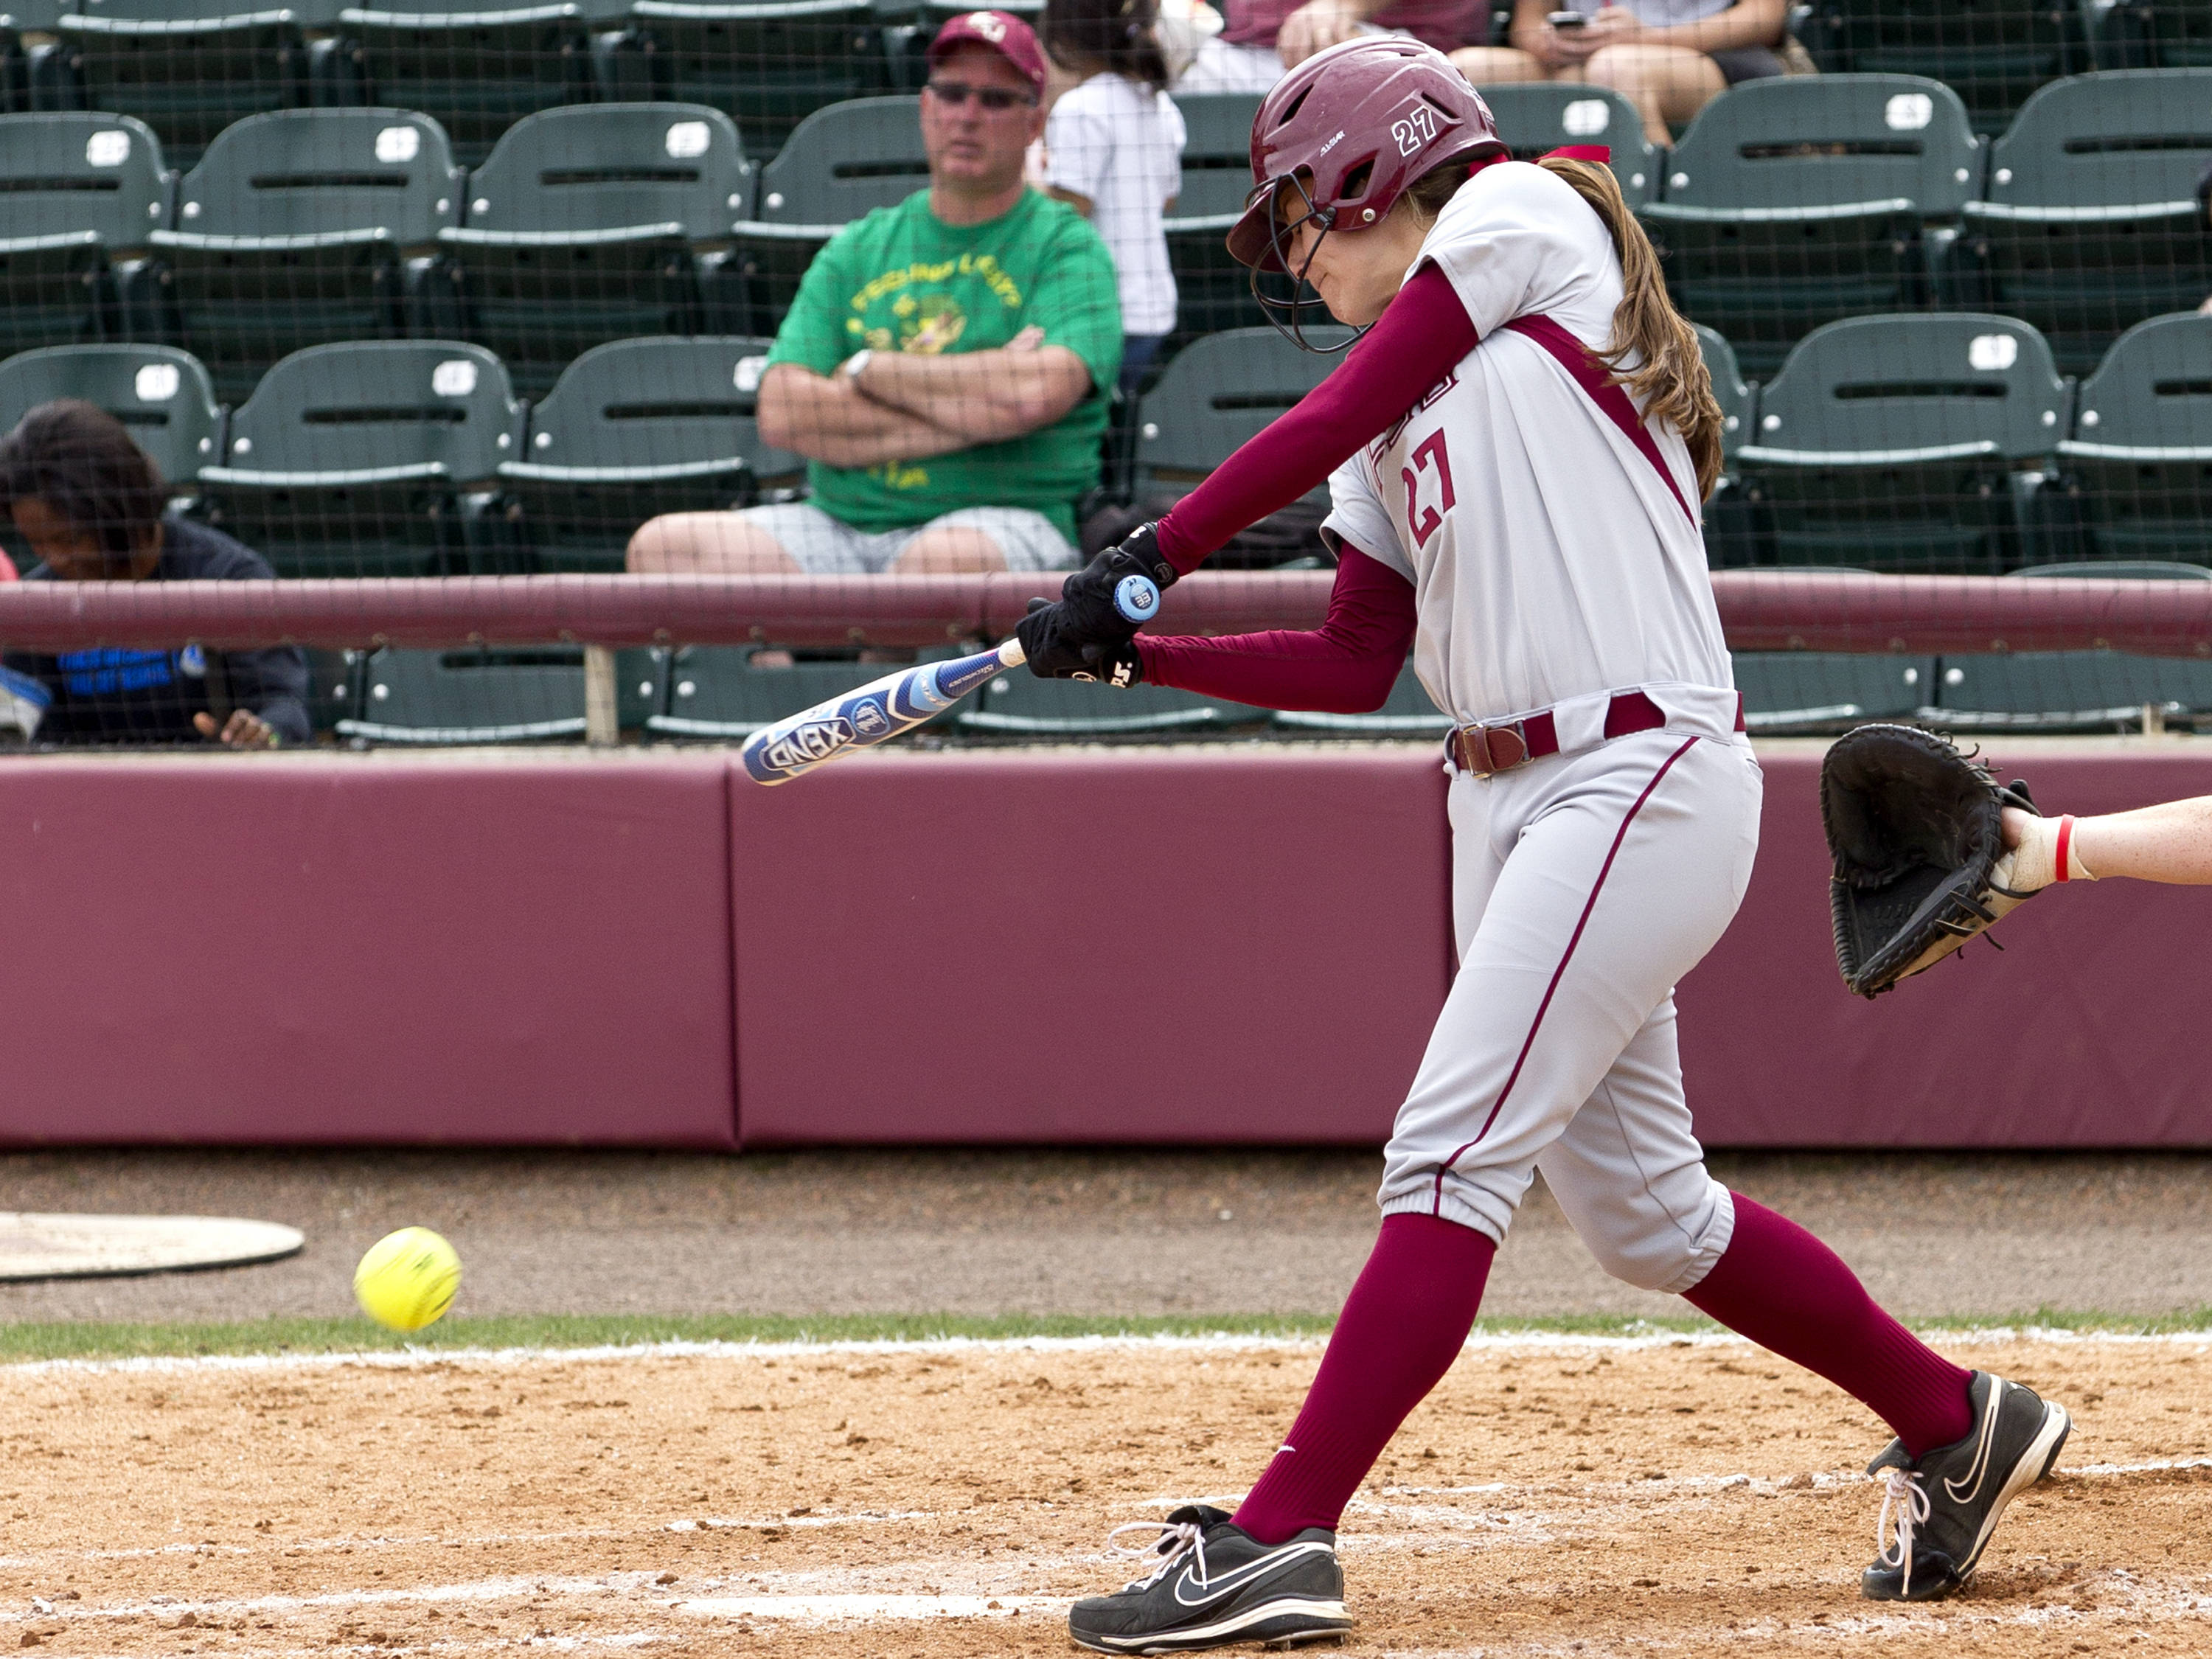 Bailey Schinella (27) with a pinch hit 2-run hit, FSU vs Minnesota, 03/17/13. (Photo by Steve Musco)